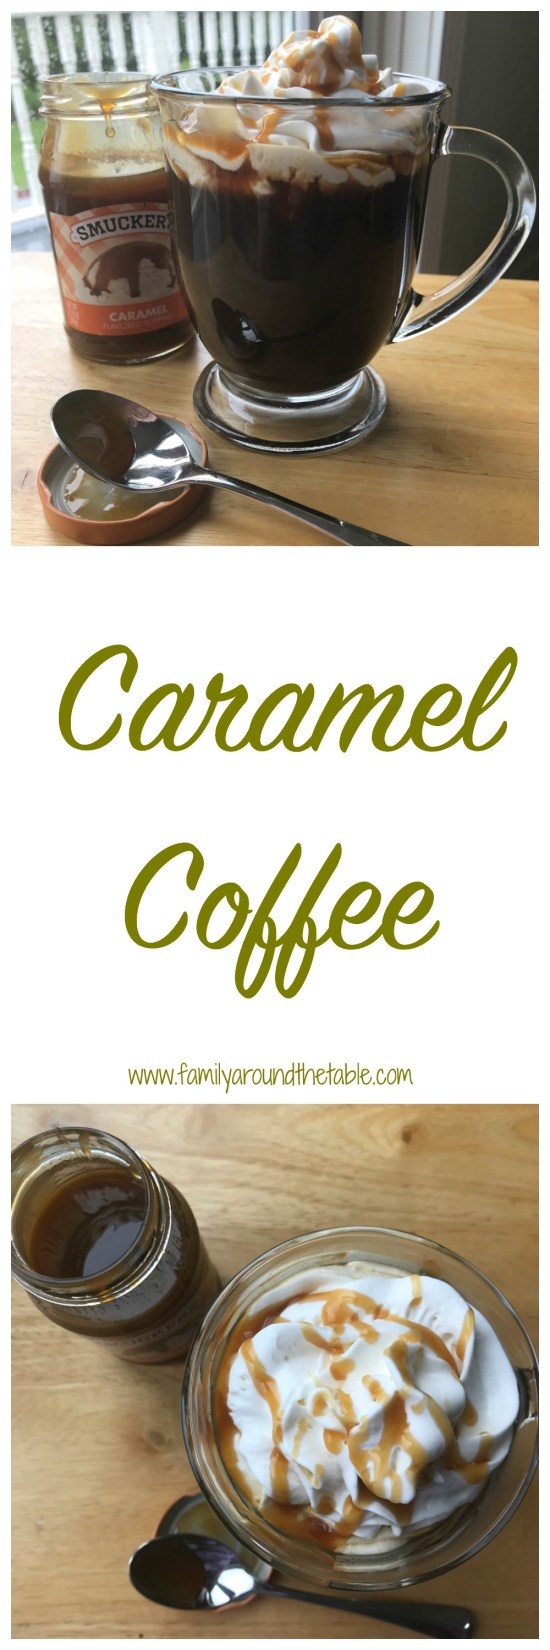 Easy and delicious caramel coffee.